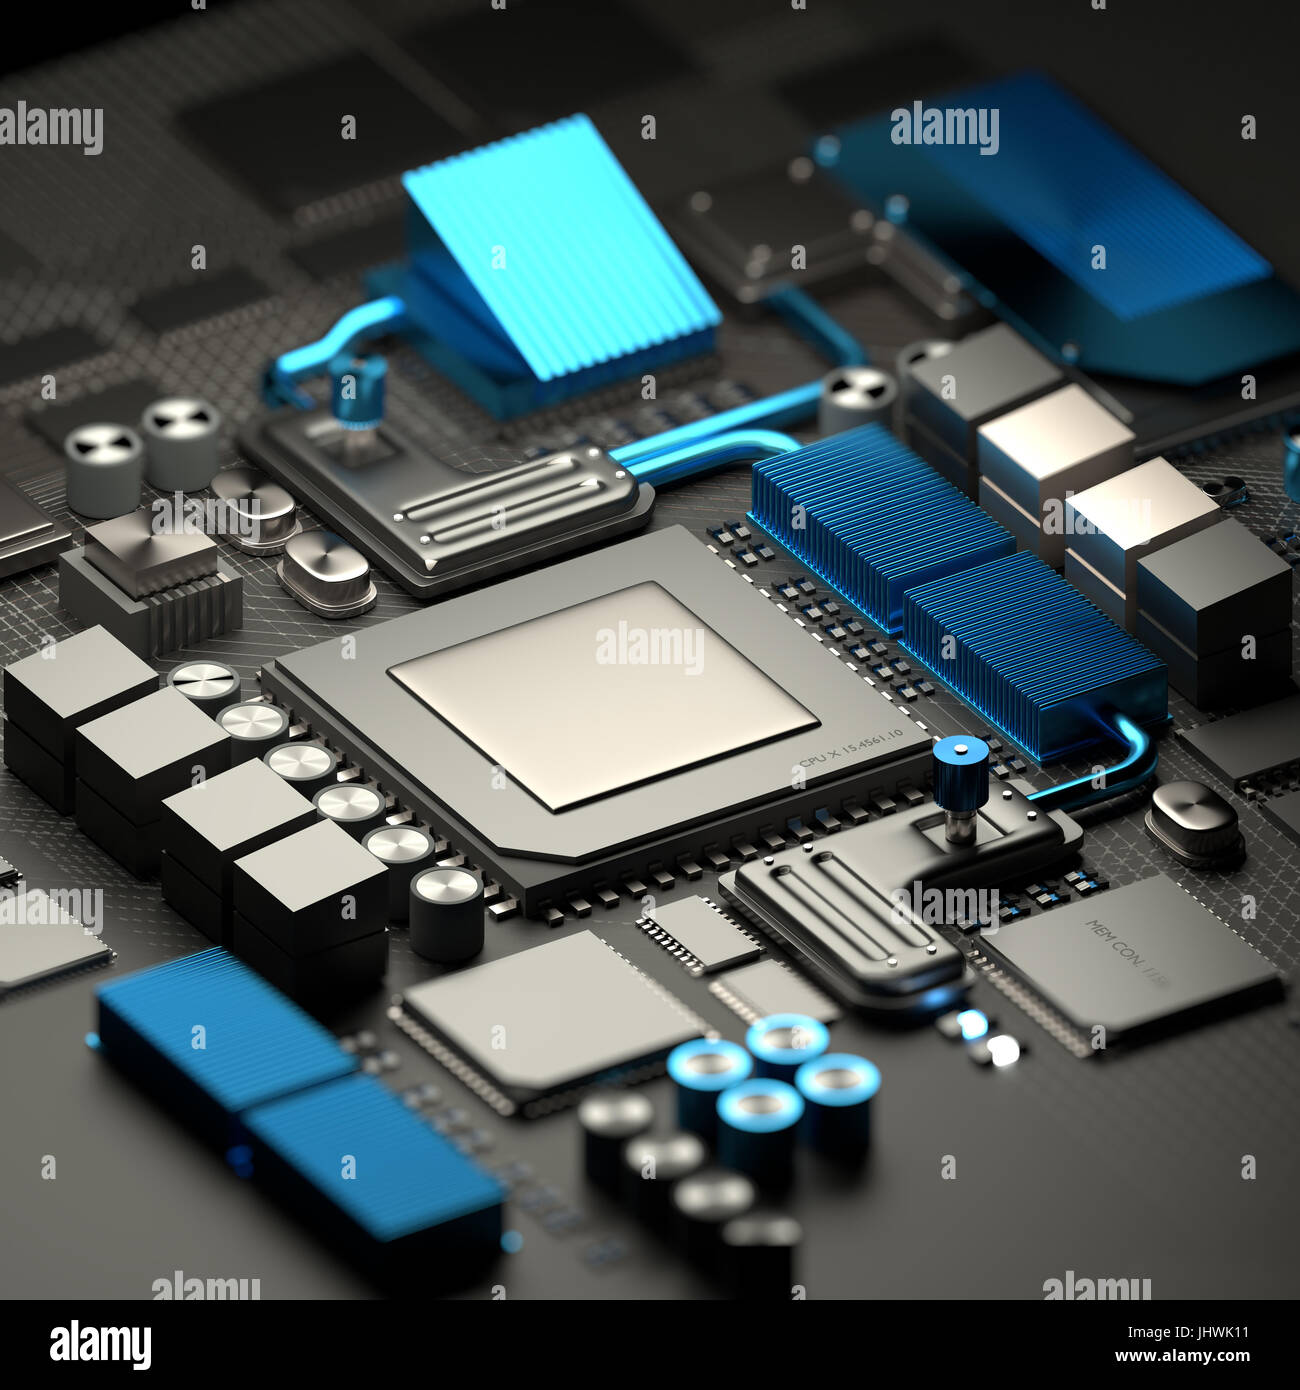 Modern inner workings of mobile devices and computers with micro CPU processor and motherboard with RAM chips. Technology - Stock Image